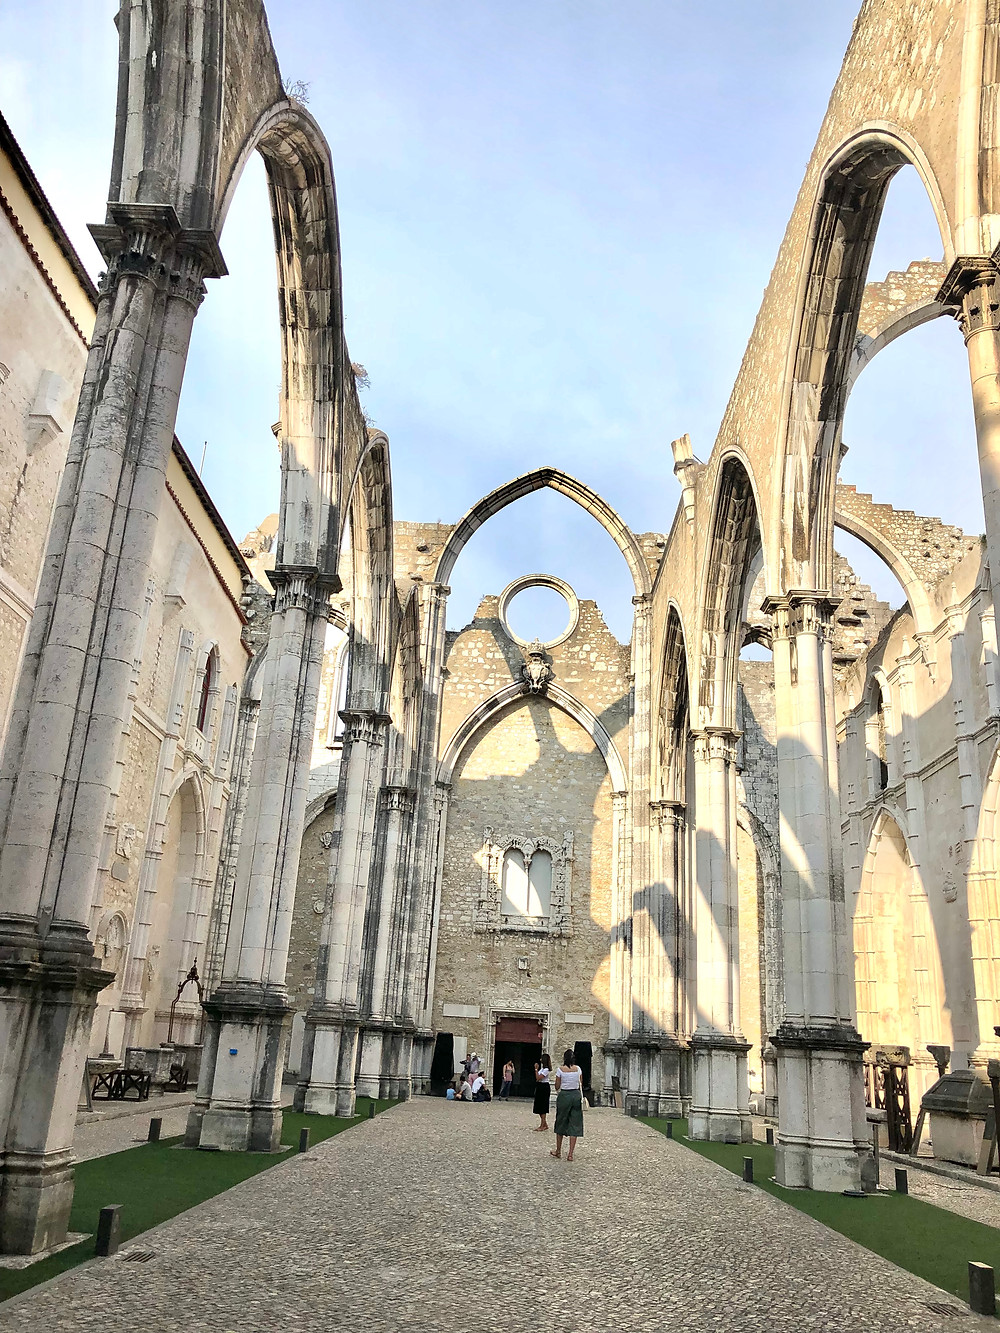 Carmo Do Convento, Curious G and Me, Portugal with kids, 4 day Lisbon itinerary, Summer travel with kids, Family travel guide, Sintra with kids, colorful Portugal, colorful Lisbon, photogenic Lisbon, photogenic Portugal, Lisbon with kids, day trip to Sintra, Pena Palace